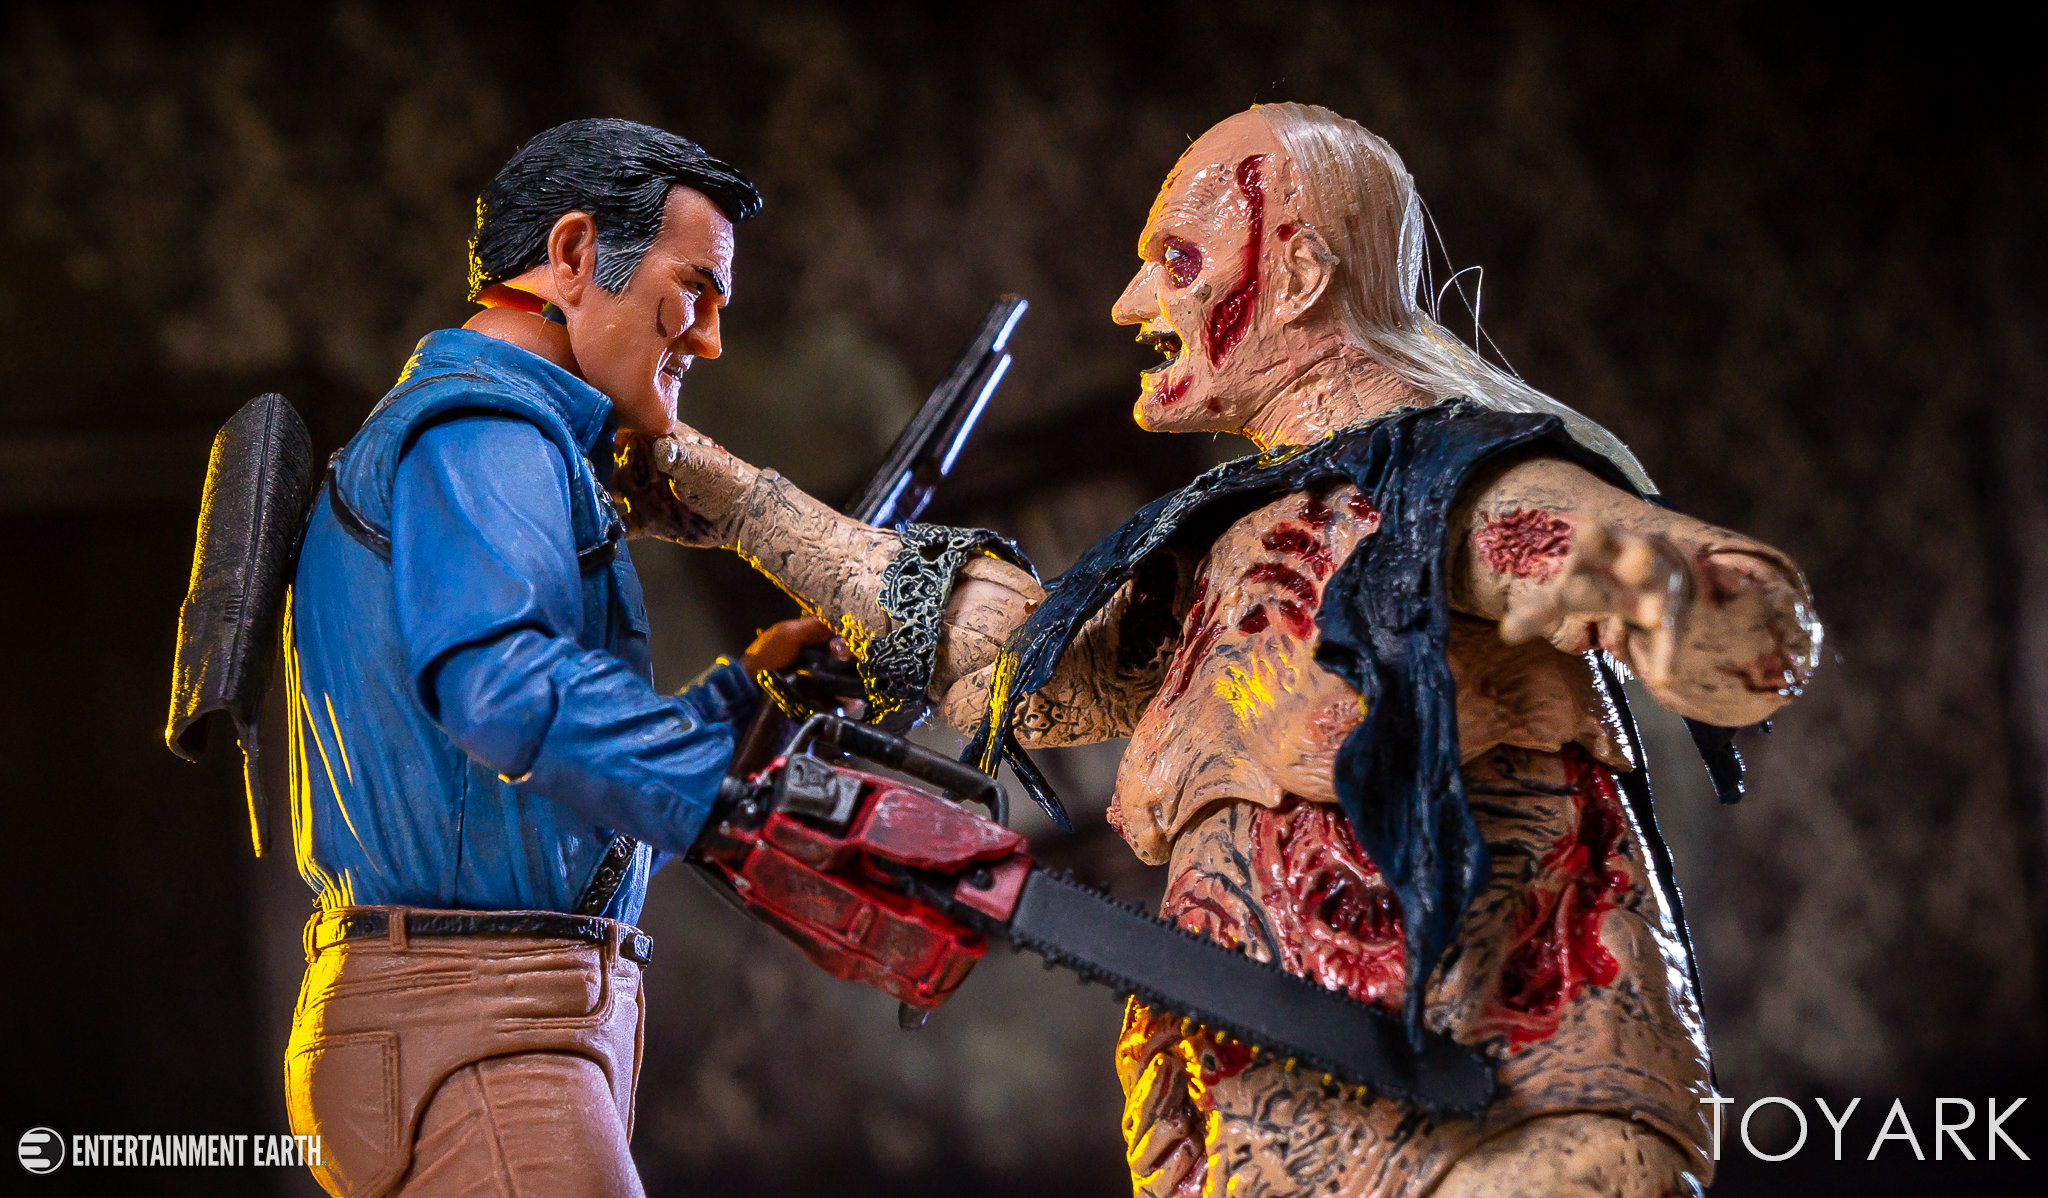 http://news.toyark.com/wp-content/uploads/sites/4/2018/04/Ash-vs-Evil-Dead-Series-2-NECA-078.jpg